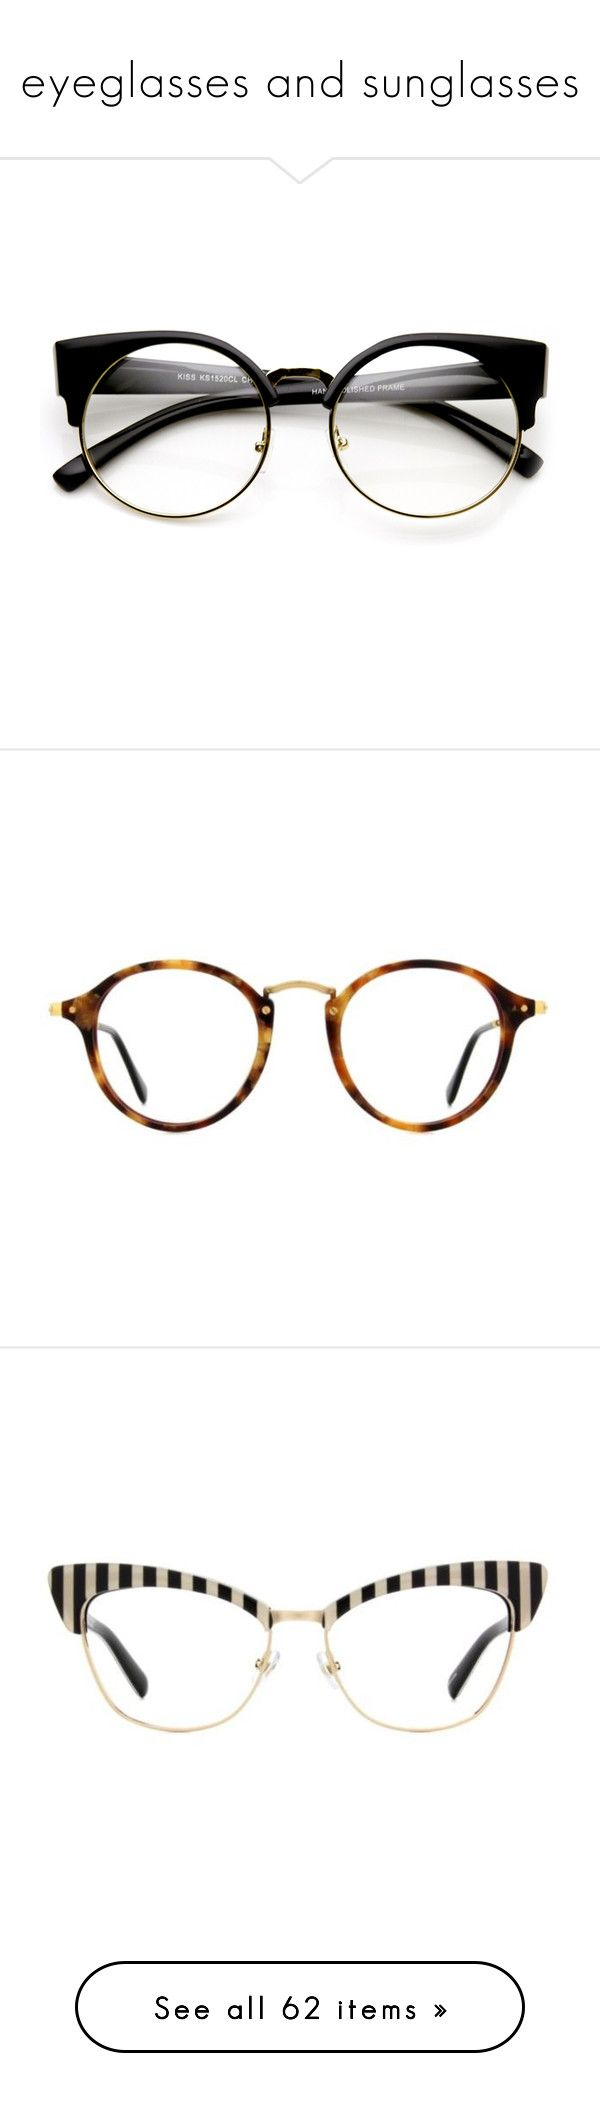 """""""eyeglasses and sunglasses"""" by minasworld ❤ liked on Polyvore featuring accessories, eyewear, eyeglasses, glasses, cateye eyeglasses, hipster glasses, round eye glasses, cat eye glasses, hipster eye glasses and tortoise"""